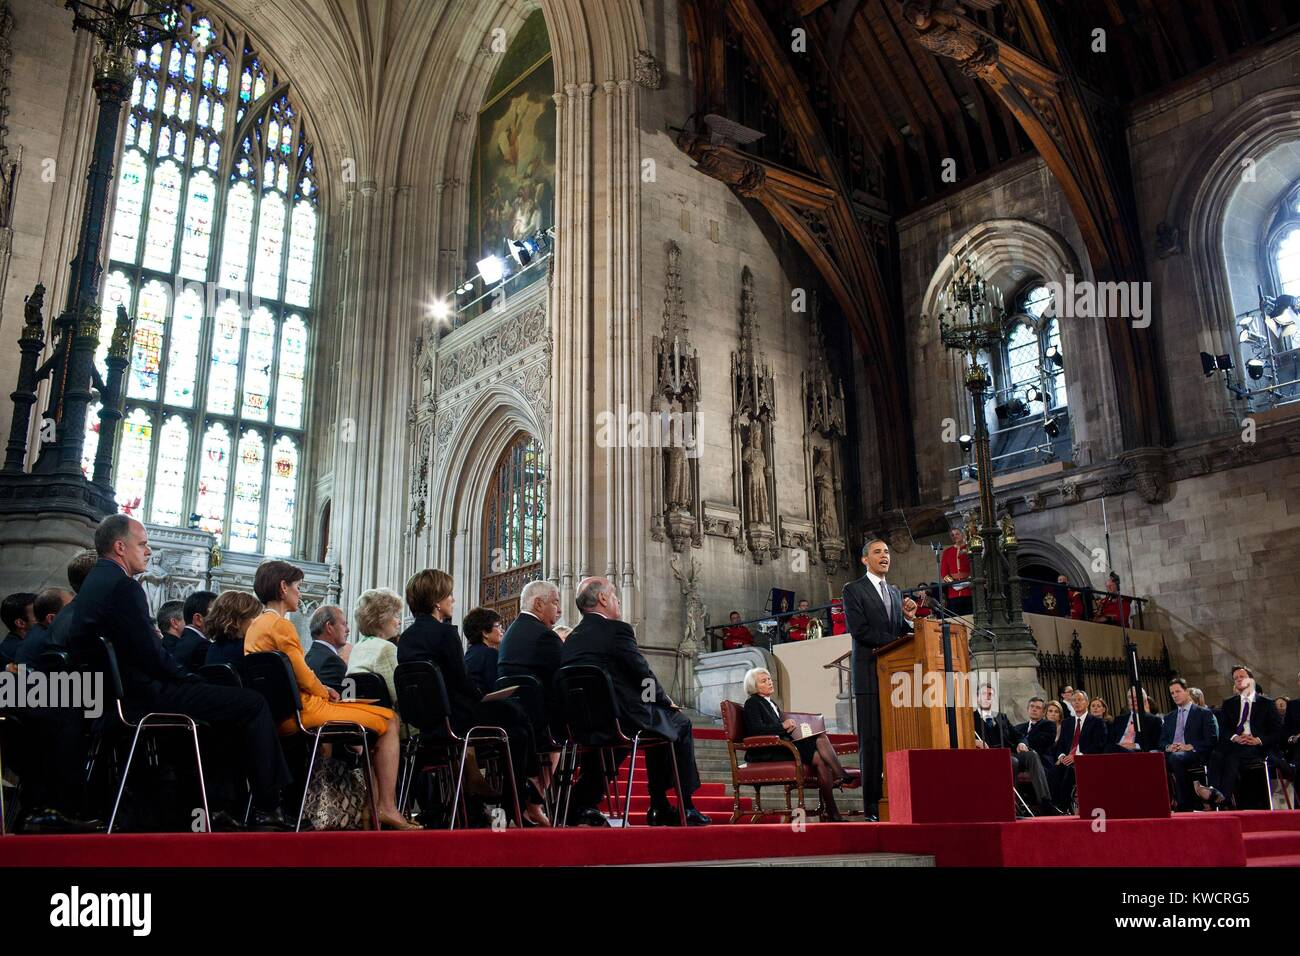 President Barack Obama speaks to members of both Houses of Parliament at Westminster Hall. London, England, May - Stock Image